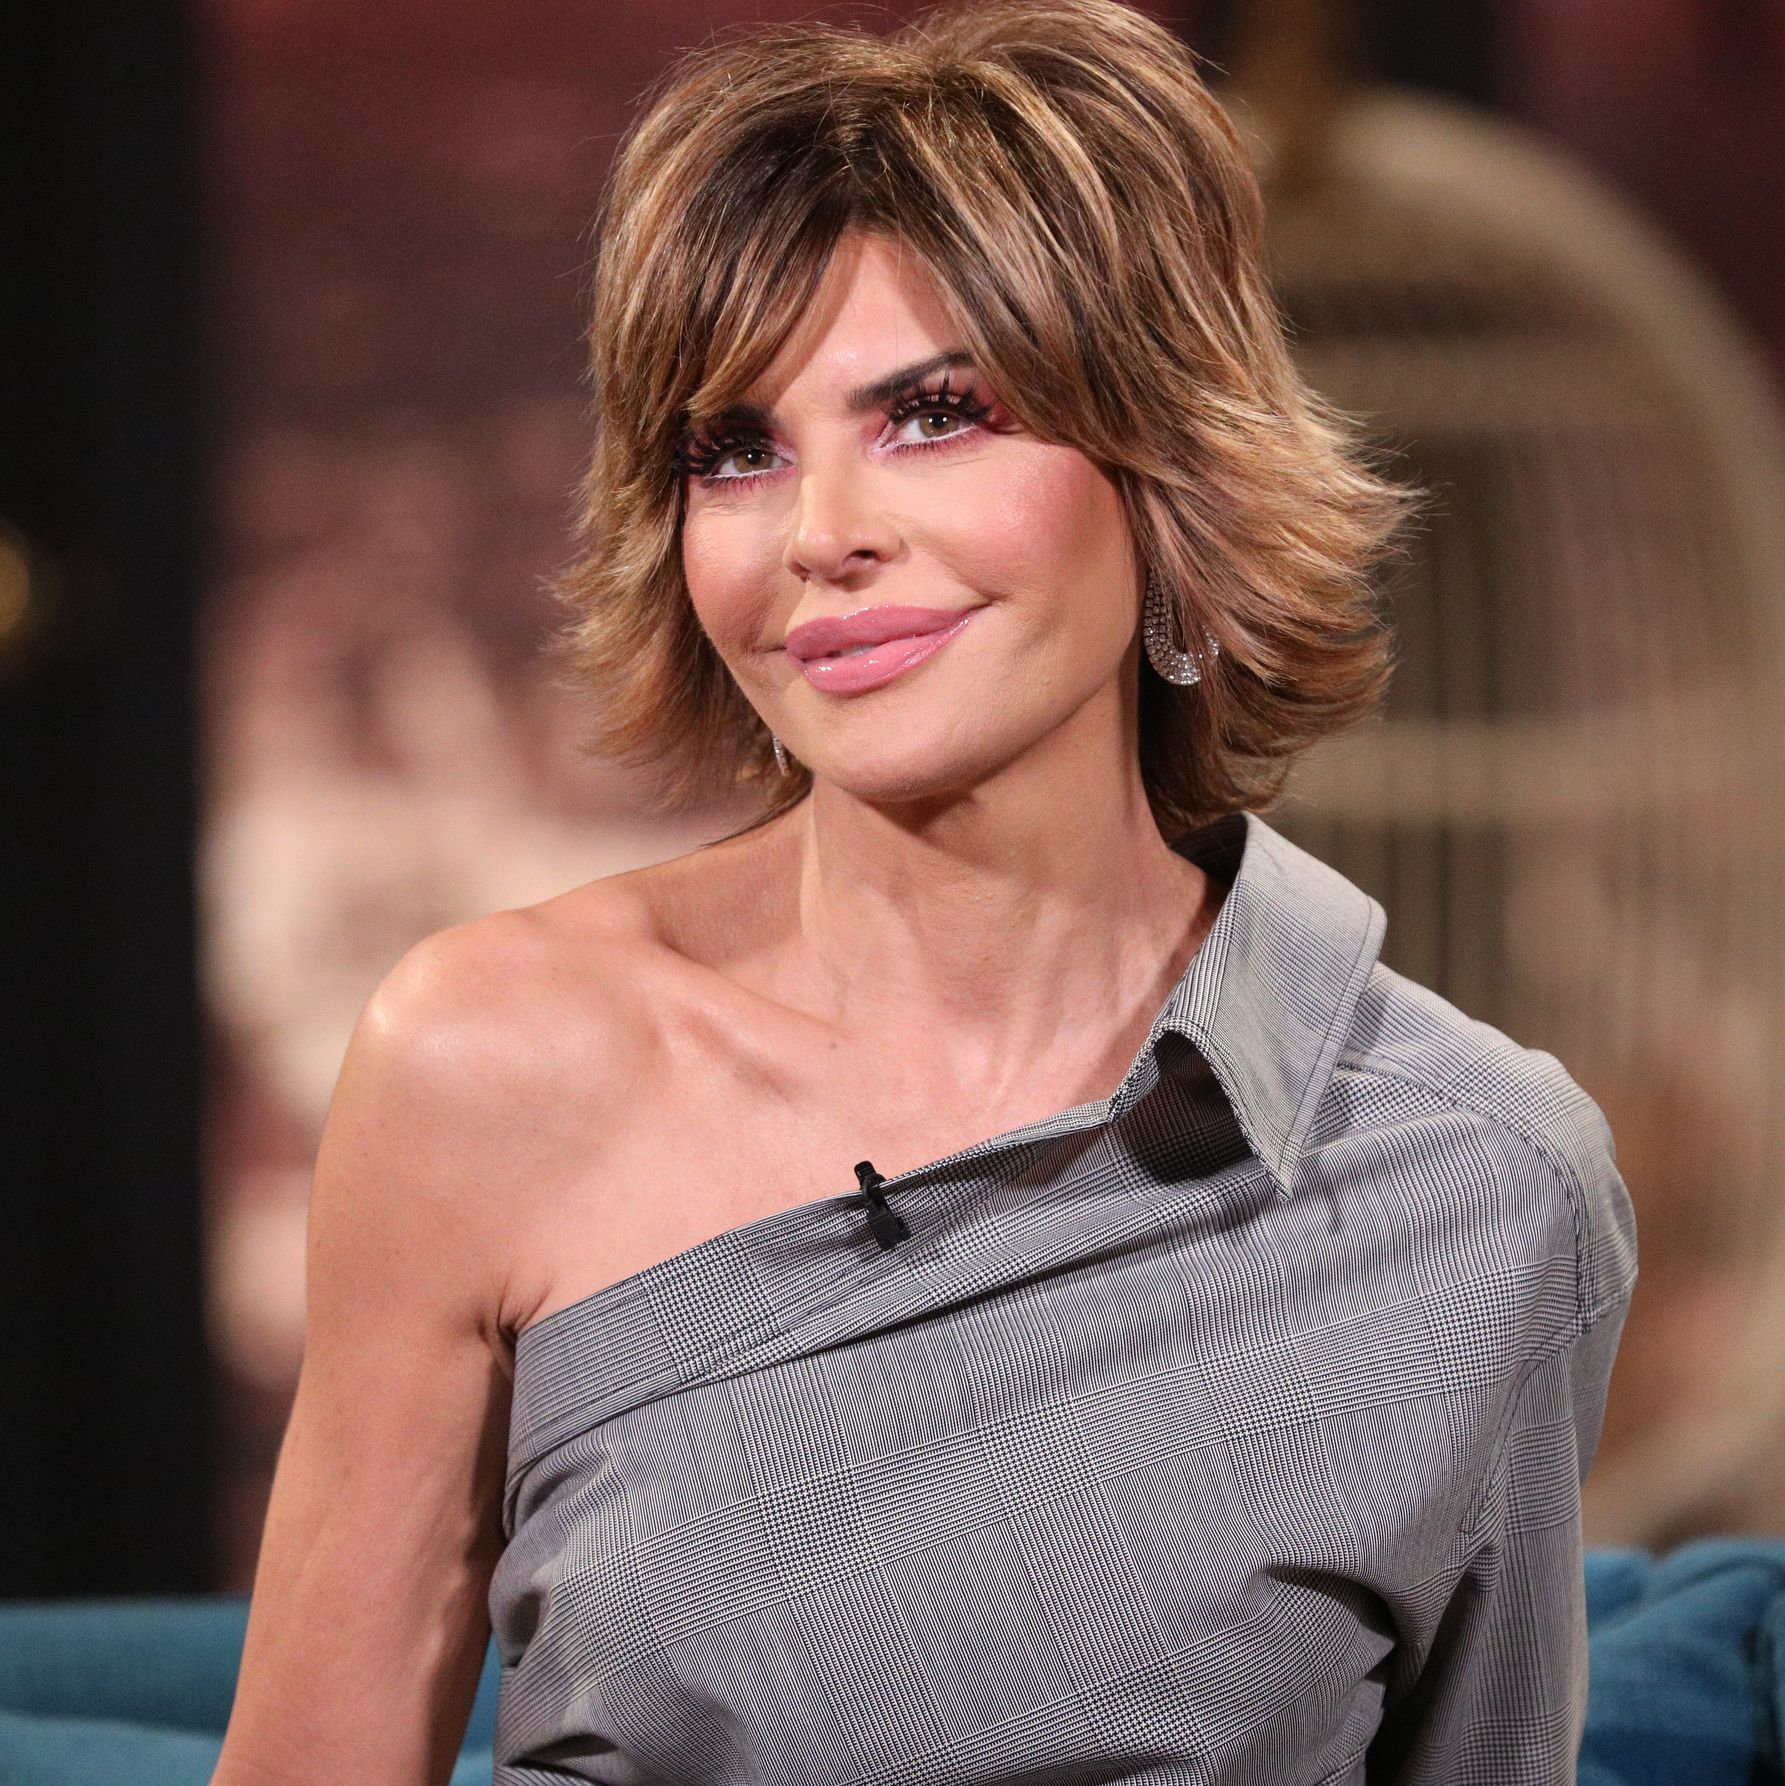 Lisa Rinna Just Posted a Bikini Photo on Instagram and Her Abs Look AMAZING